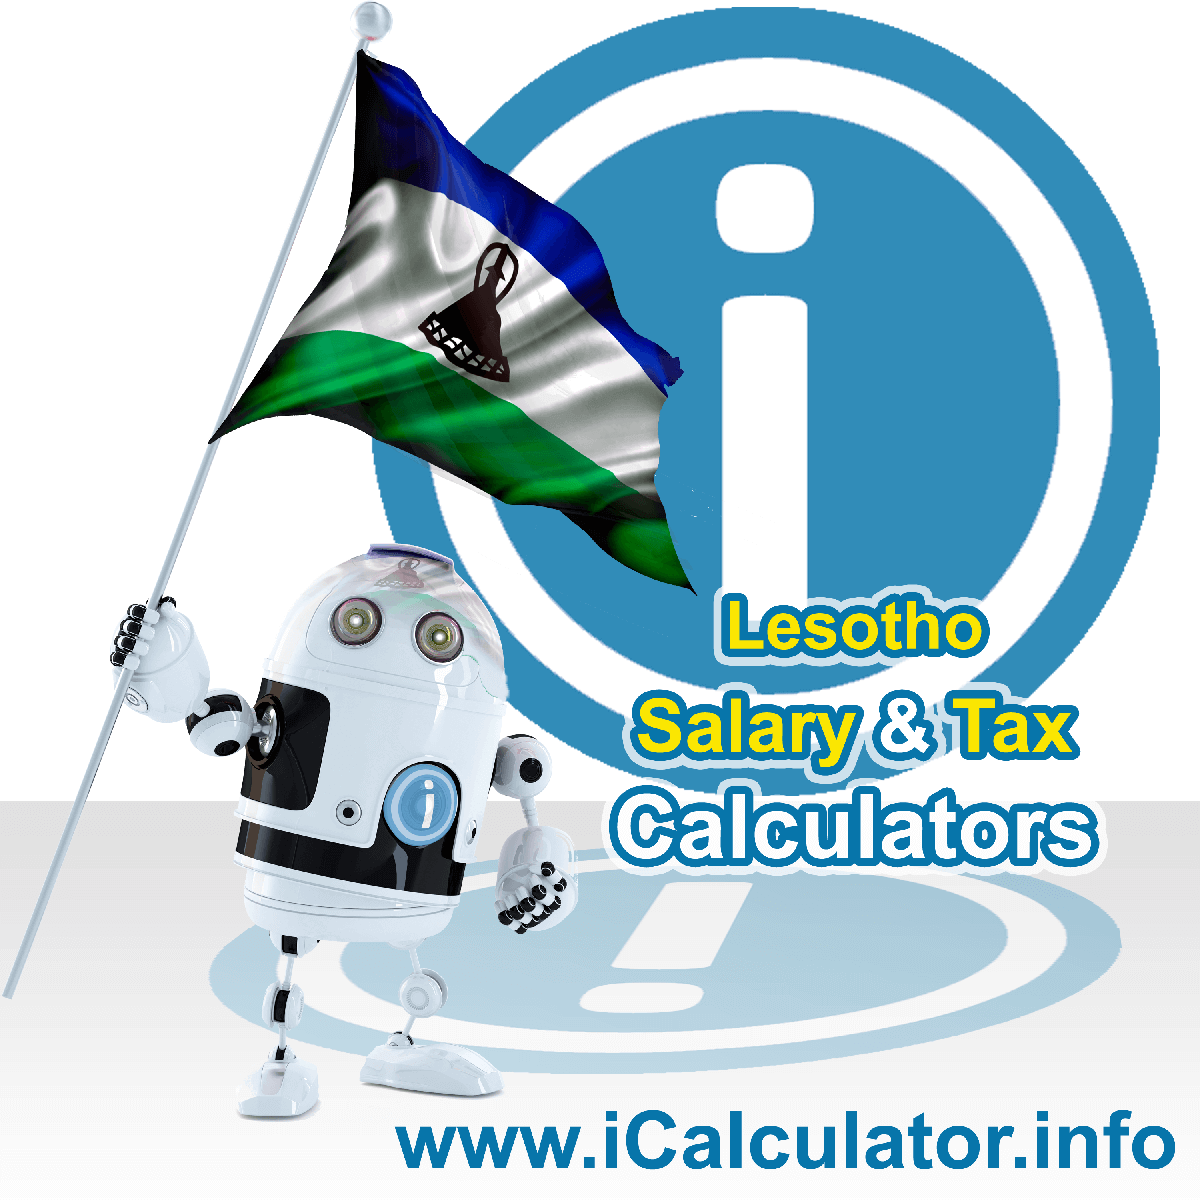 Lesotho Salary Calculator. This image shows the Lesothoese flag and information relating to the tax formula for the Lesotho Tax Calculator